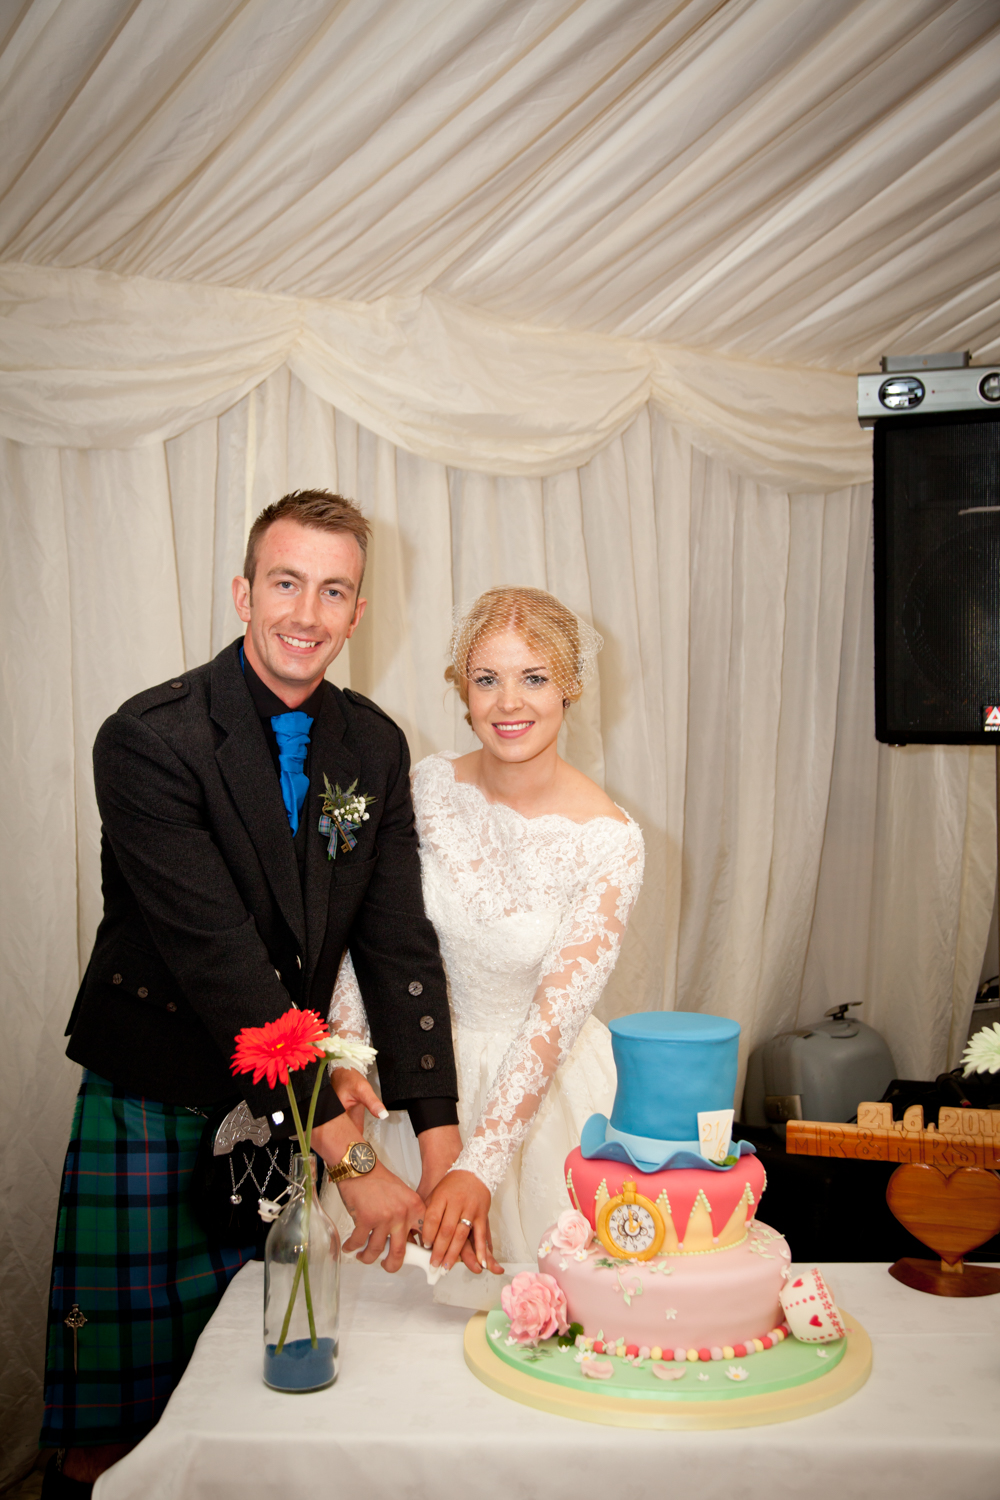 PICTORIAL_BERWICK_WEDDING_ALICE_WONDERLAND_MAD_HATTERS_FARM-9529.jpg